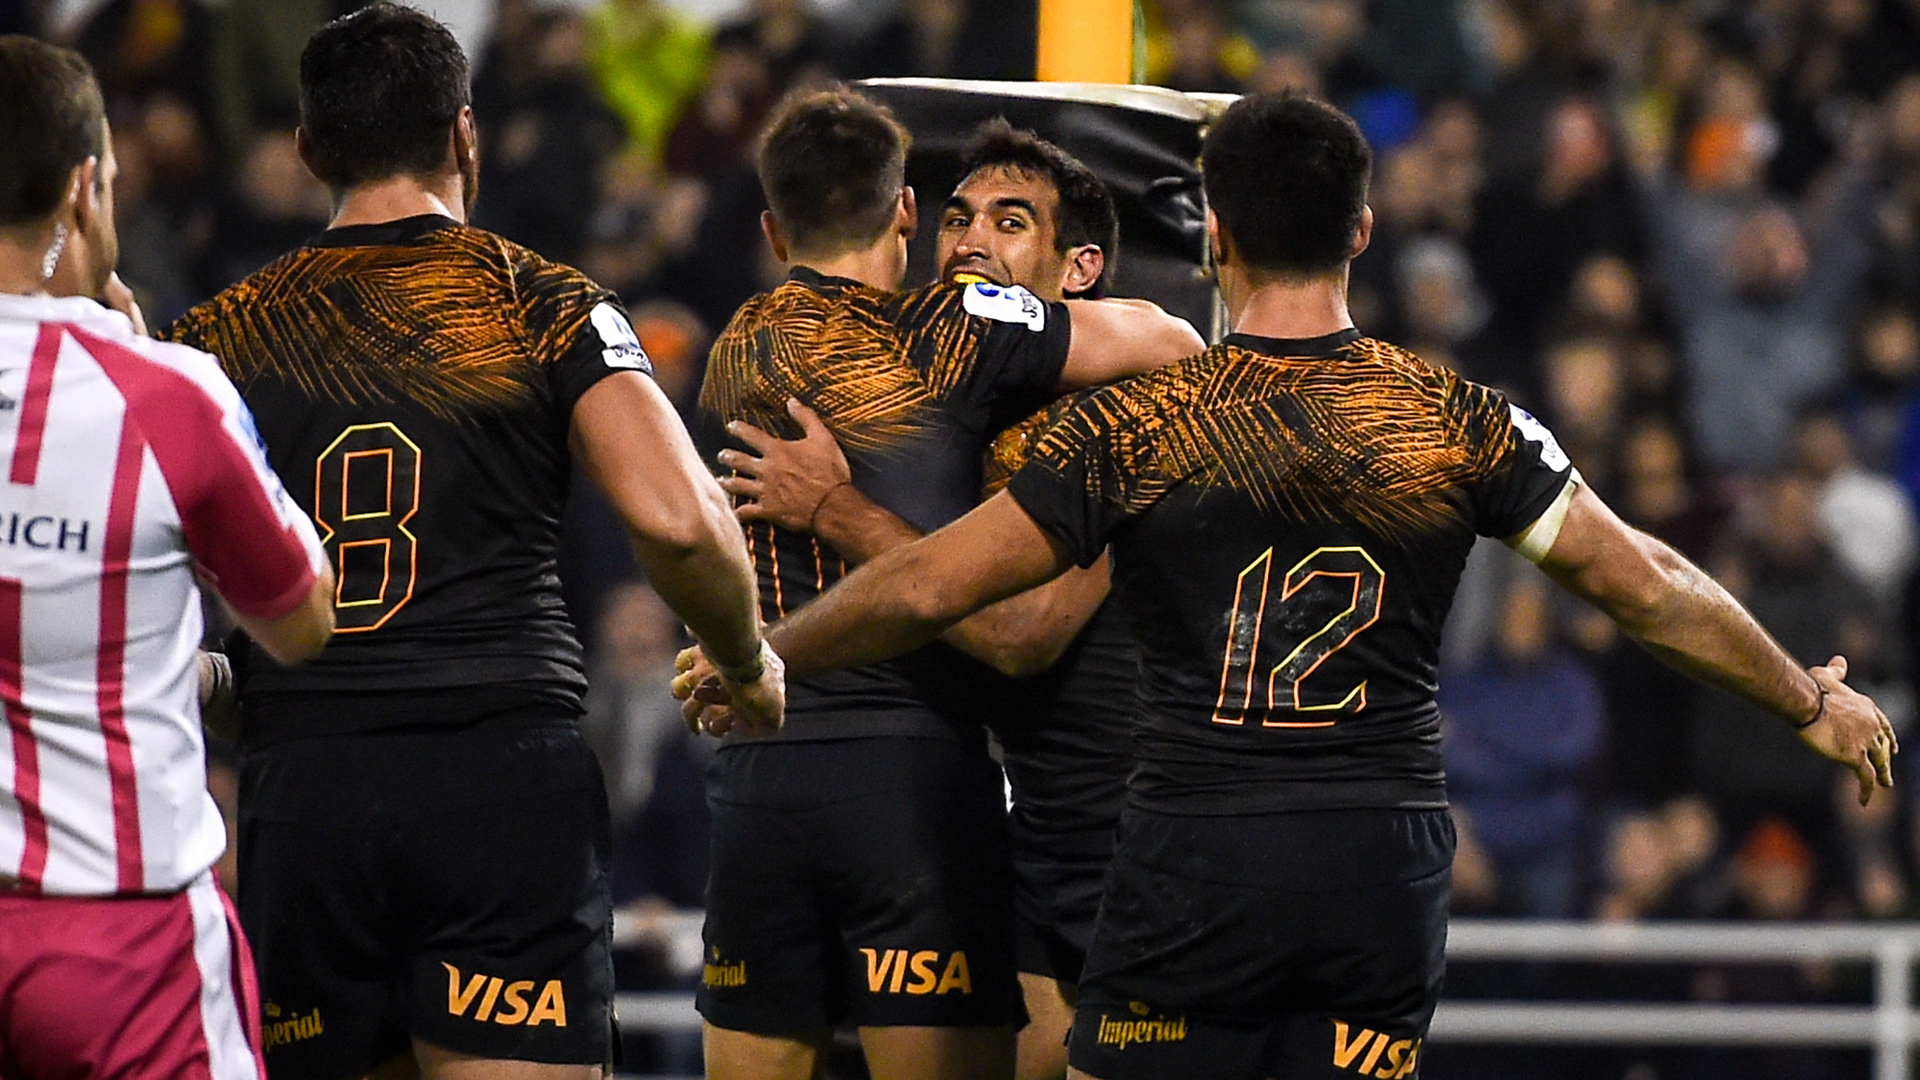 Jaguares crush Brumbies to reach first Super Rugby final